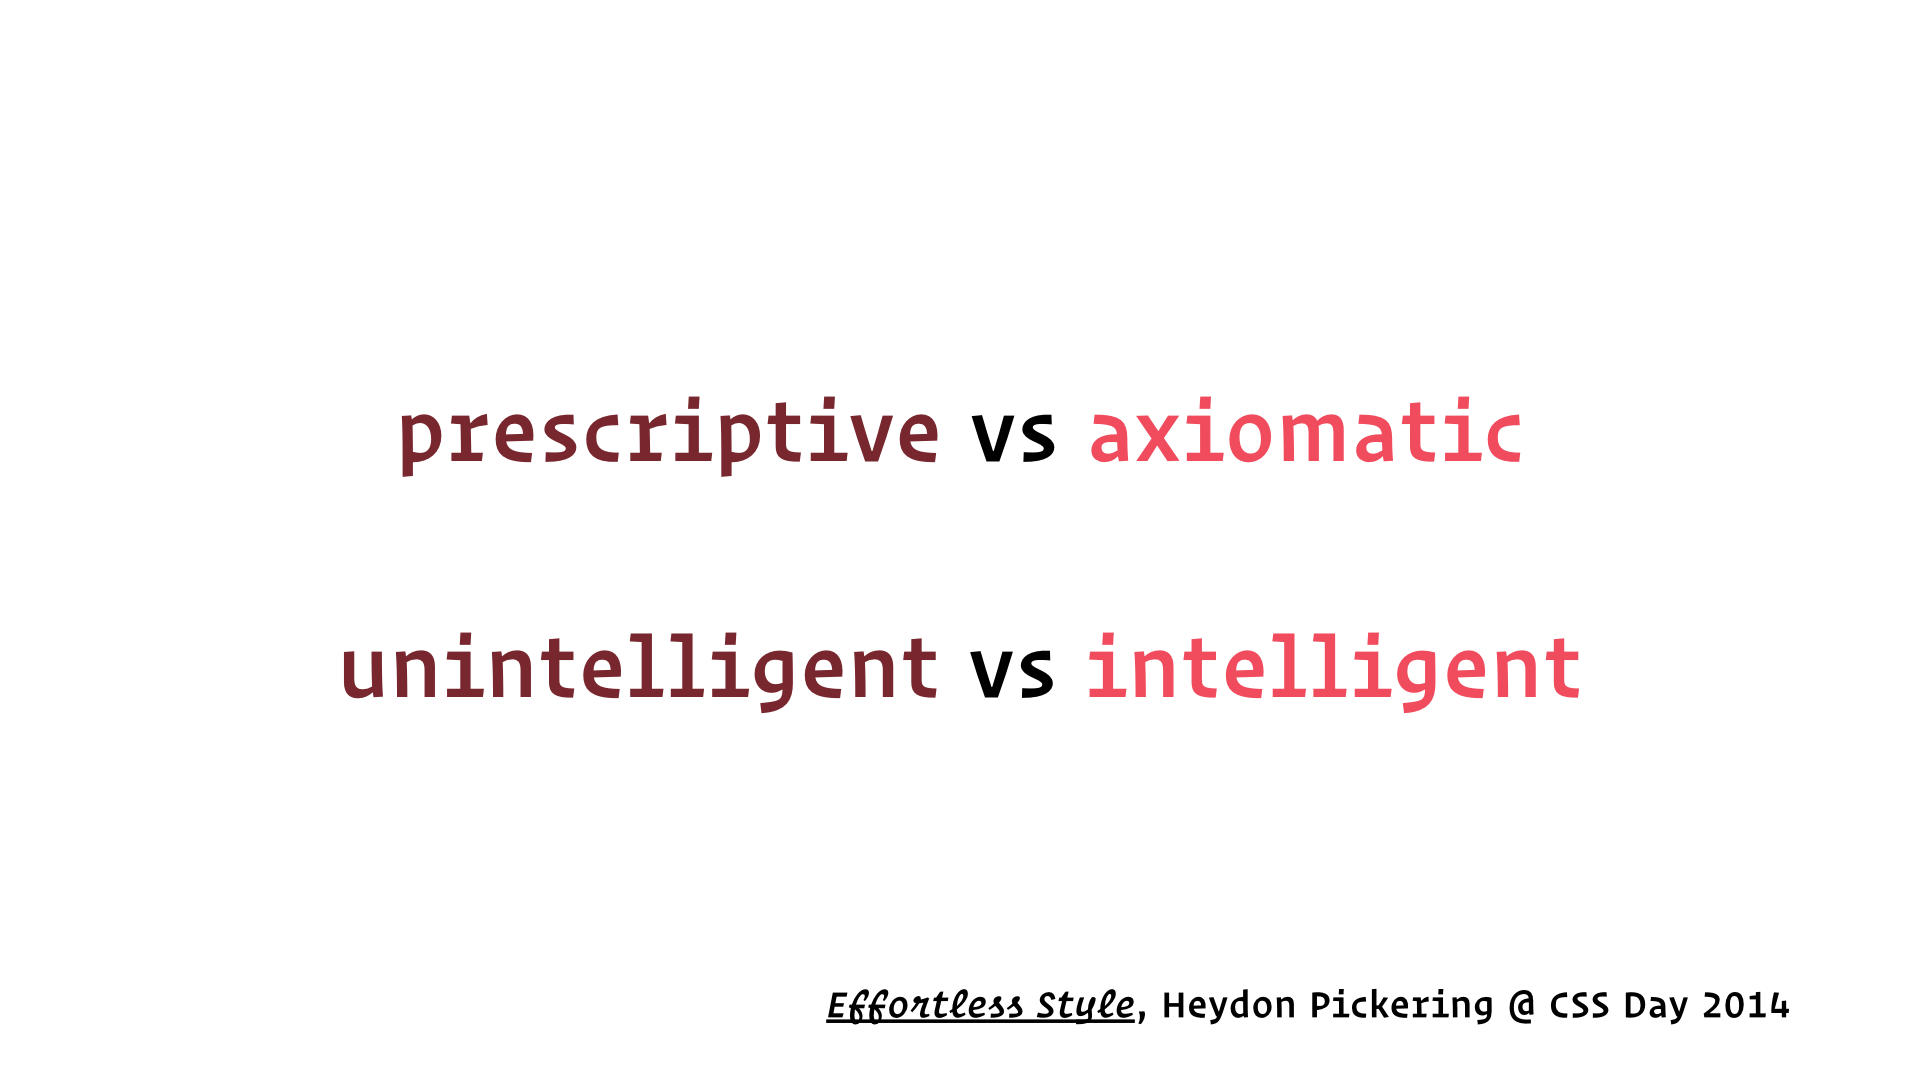 slide: prescriptive vs axiomatic, unintelligent vs intelligent